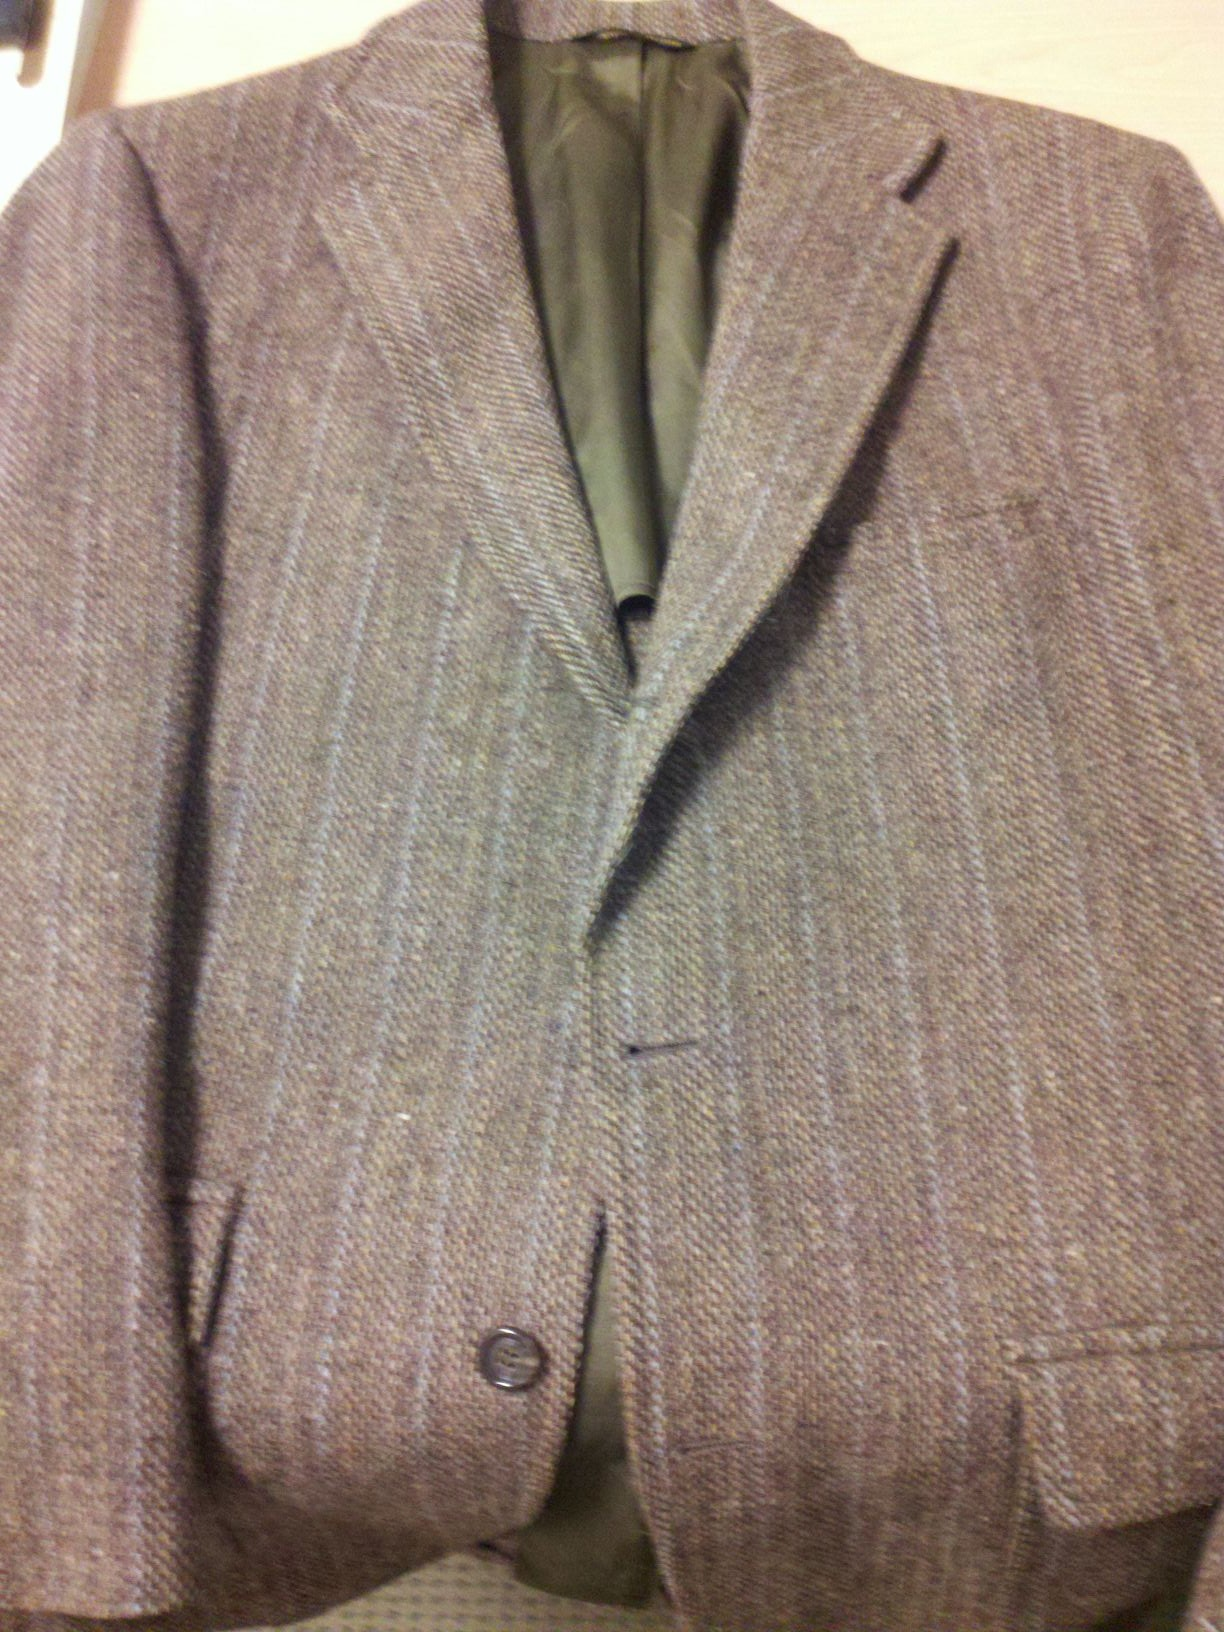 J Press Tweed.jpg